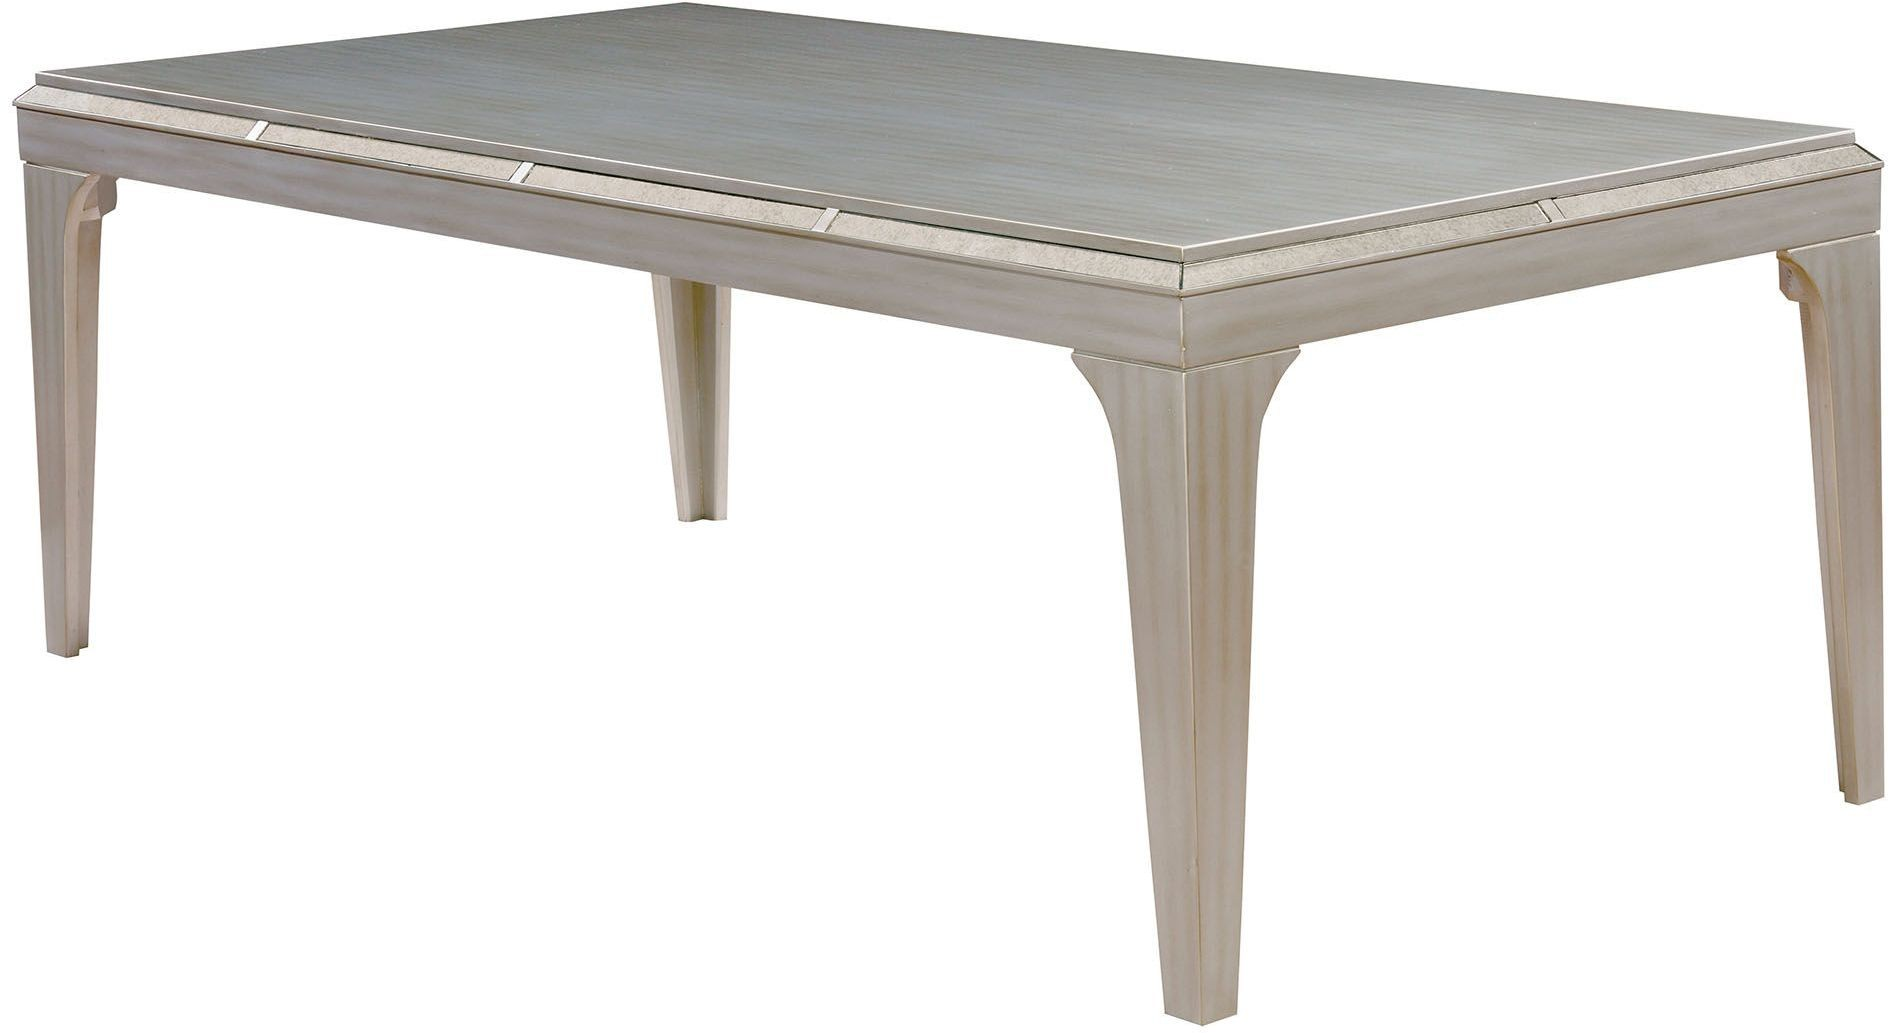 Diocles silver rectangular dining table from furniture of america coleman furniture - Silver dining tables ...